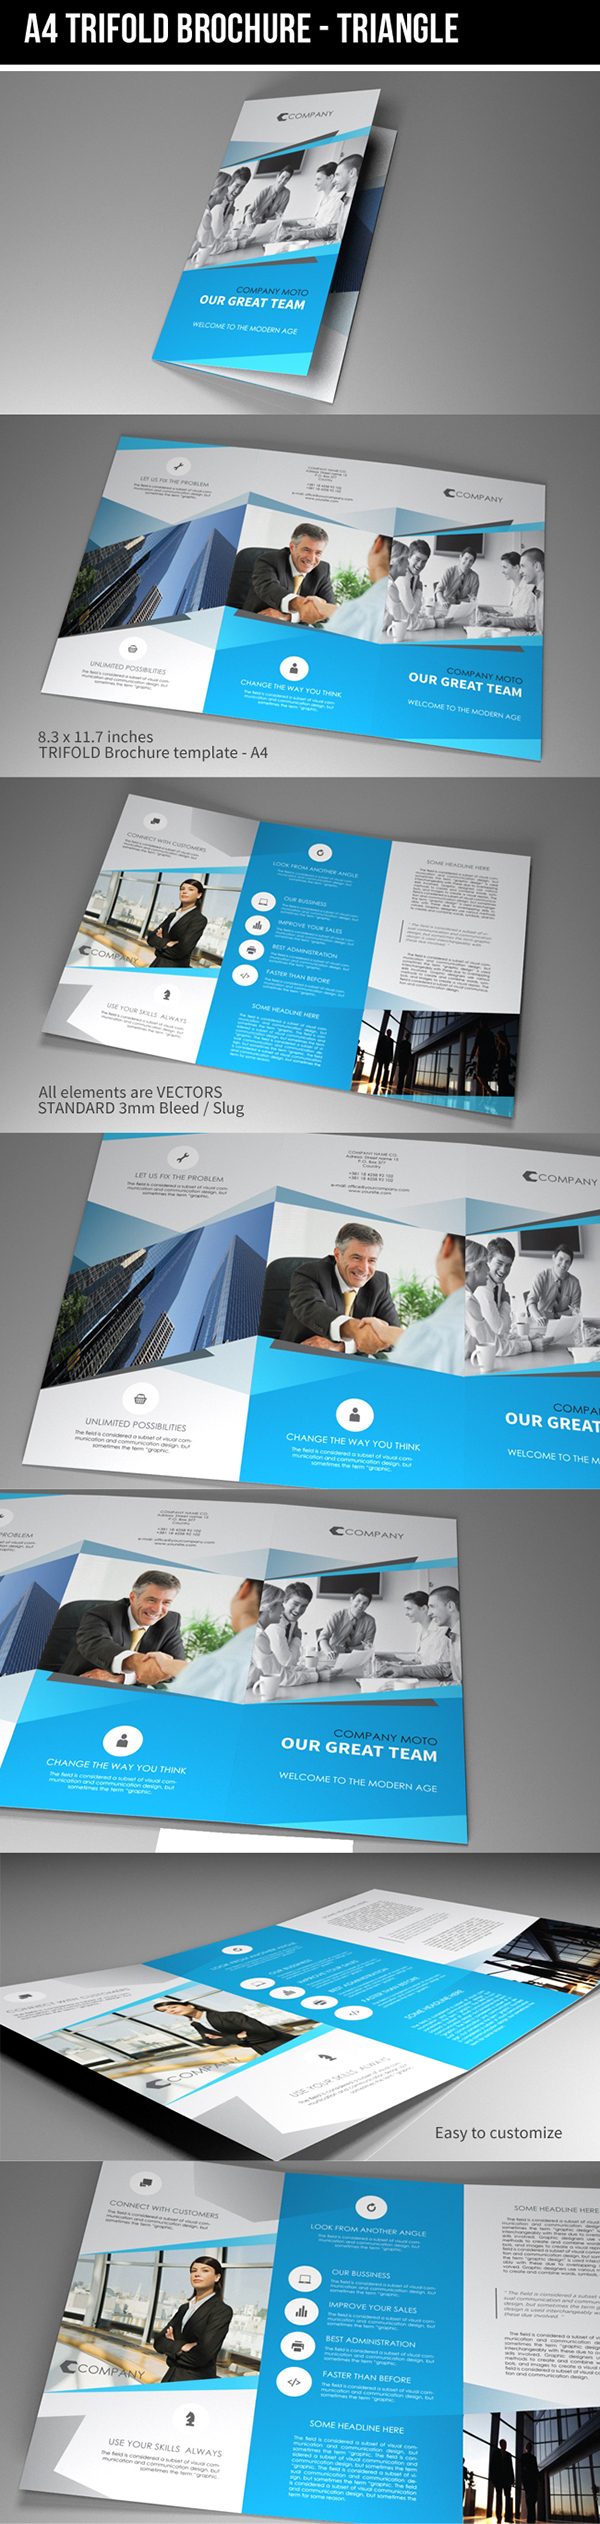 Indesign Template A4 Trifold Brochure Triangle On Behance